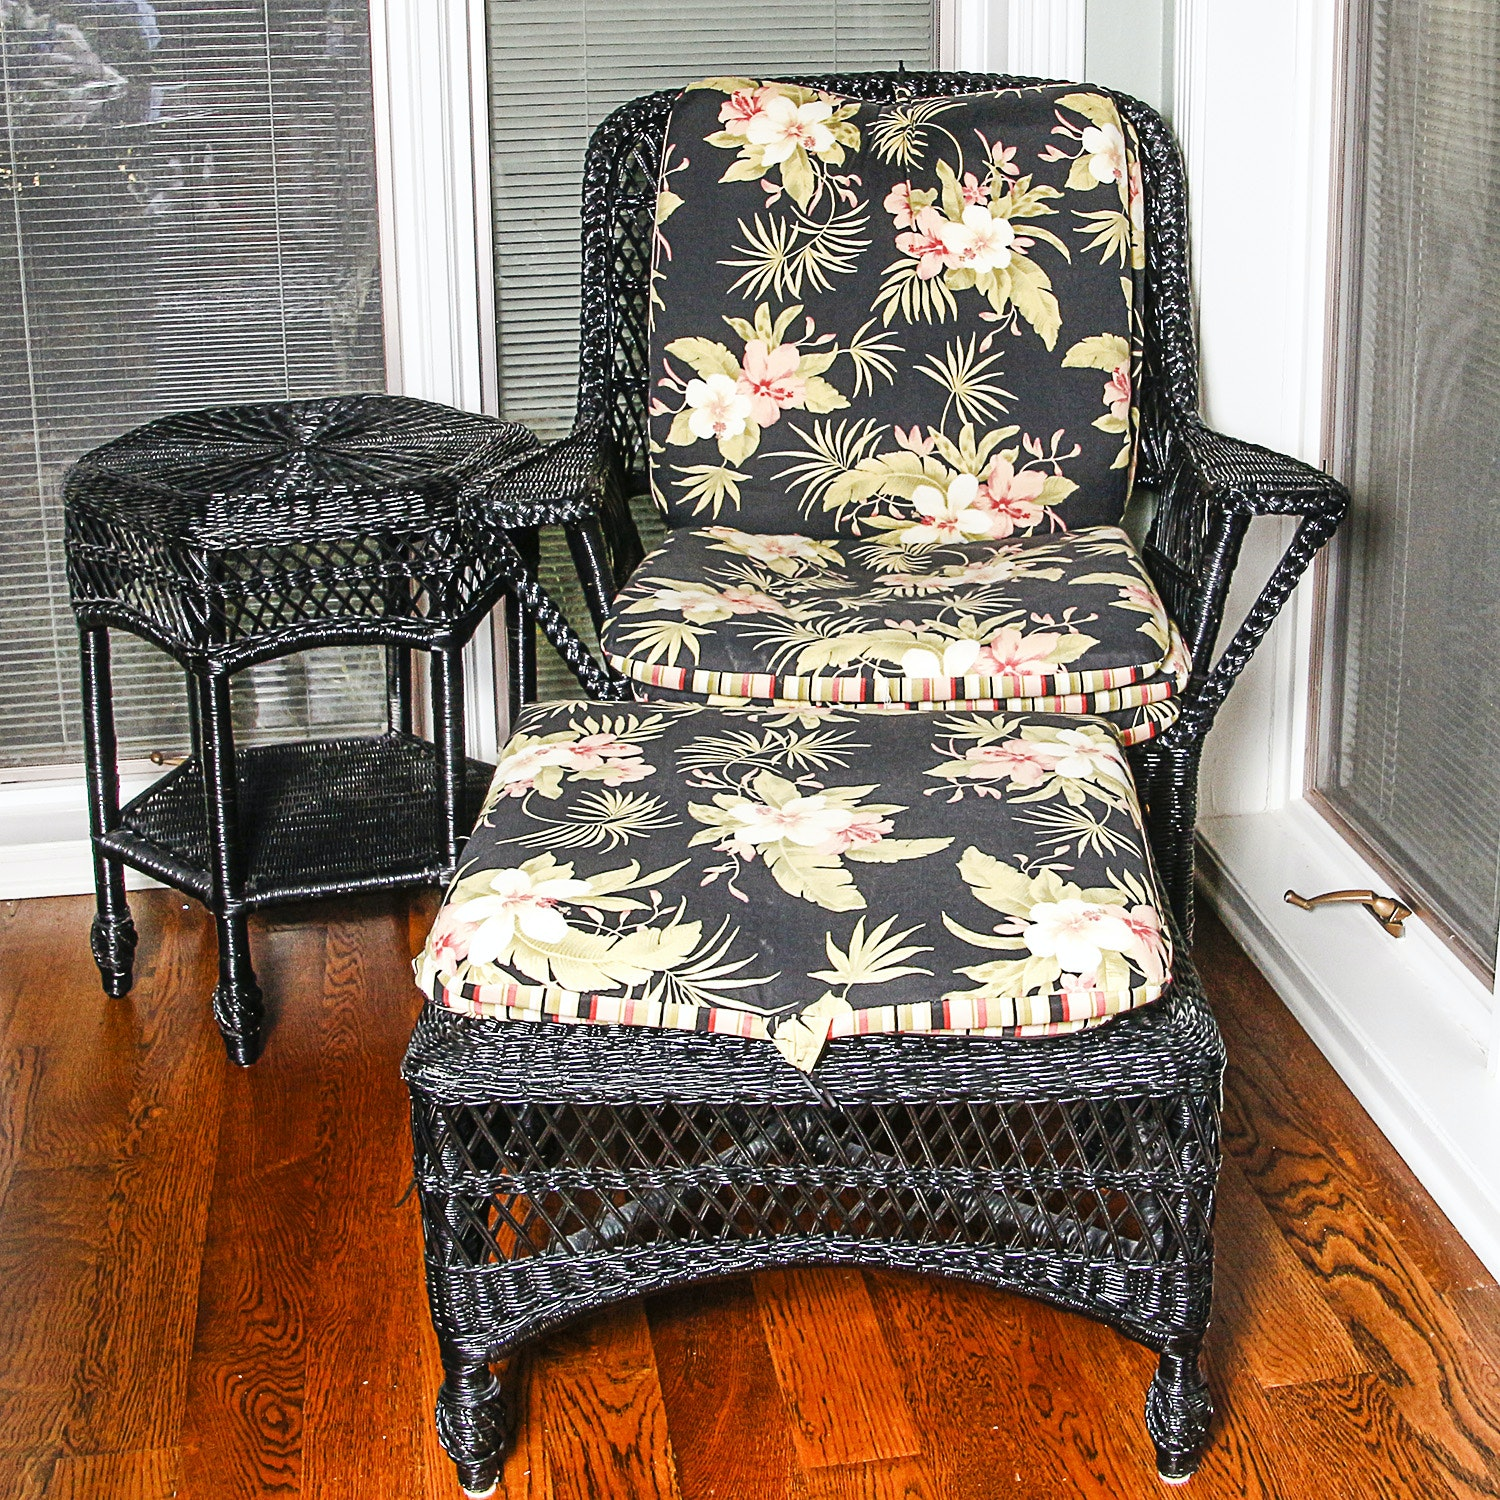 Black Wicker Chair with Ottoman and Side Table